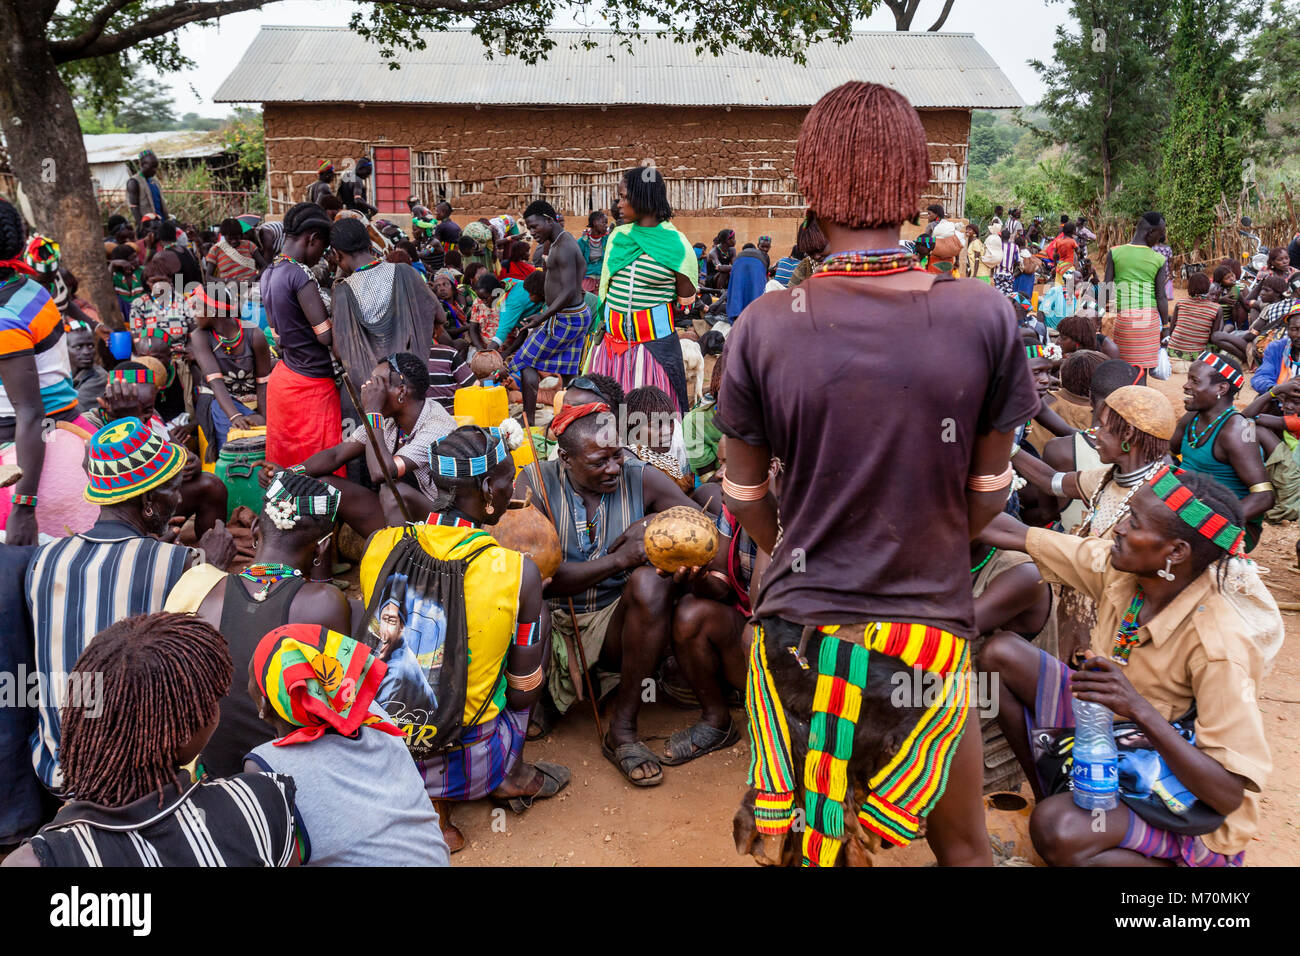 Hamer and Banna People Socialising At The Alduba Tribal Market, near Keyafer, Omo Valley, Ethiopia - Stock Image